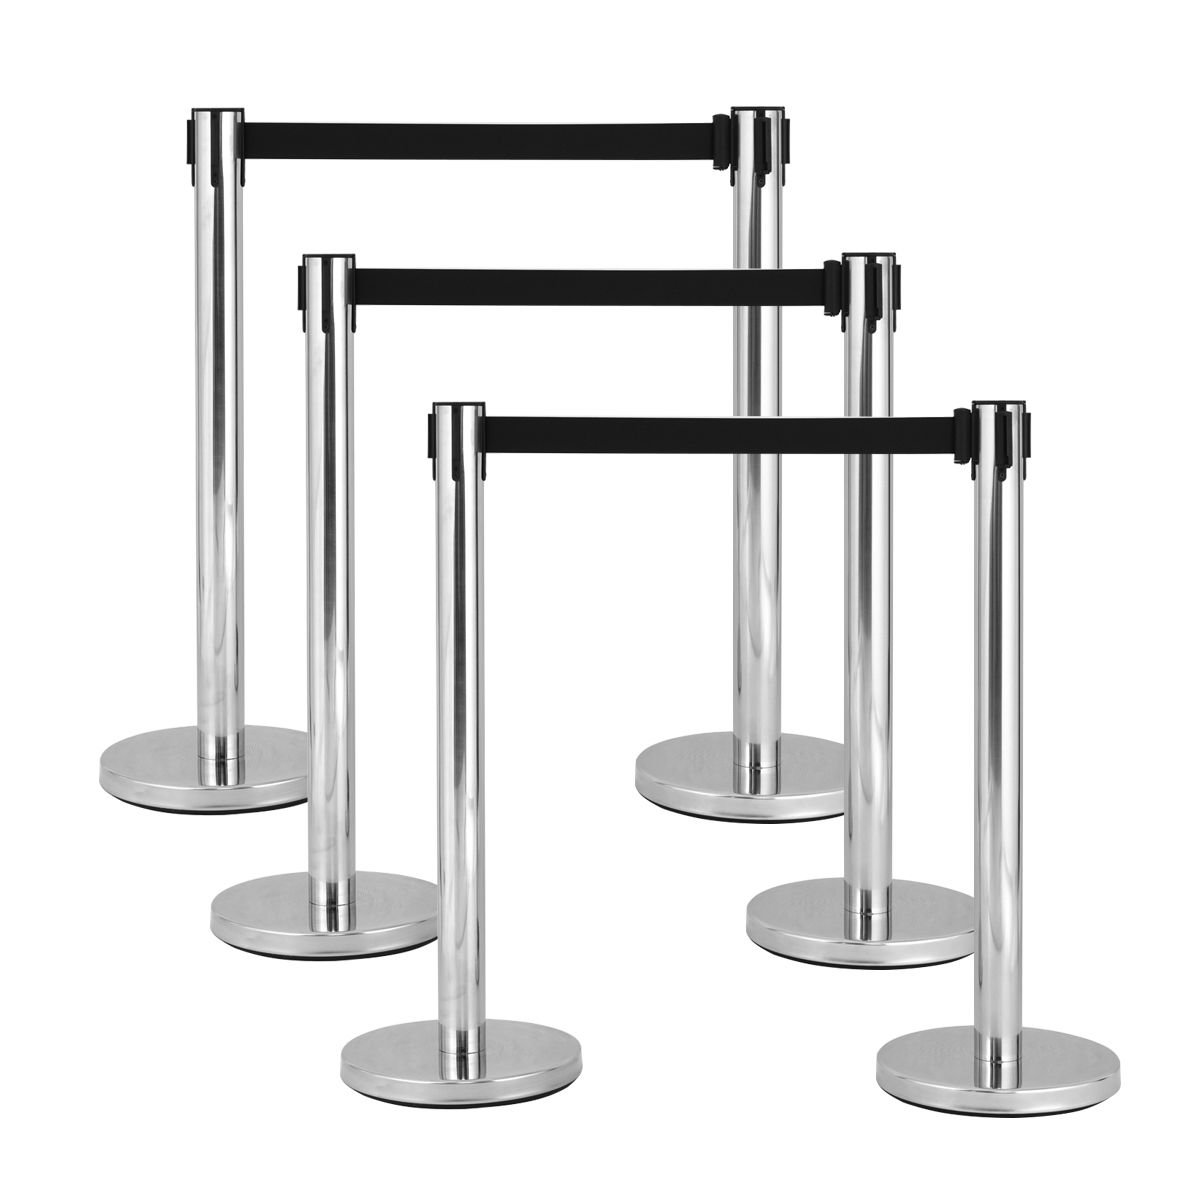 Goplus 6Pcs Stanchion Post Crowd Control Barrier Stainless Steel Stanchions with 6.5' Retractable Belt Posts Queue Pole, 35'' Height (Black) by Goplus